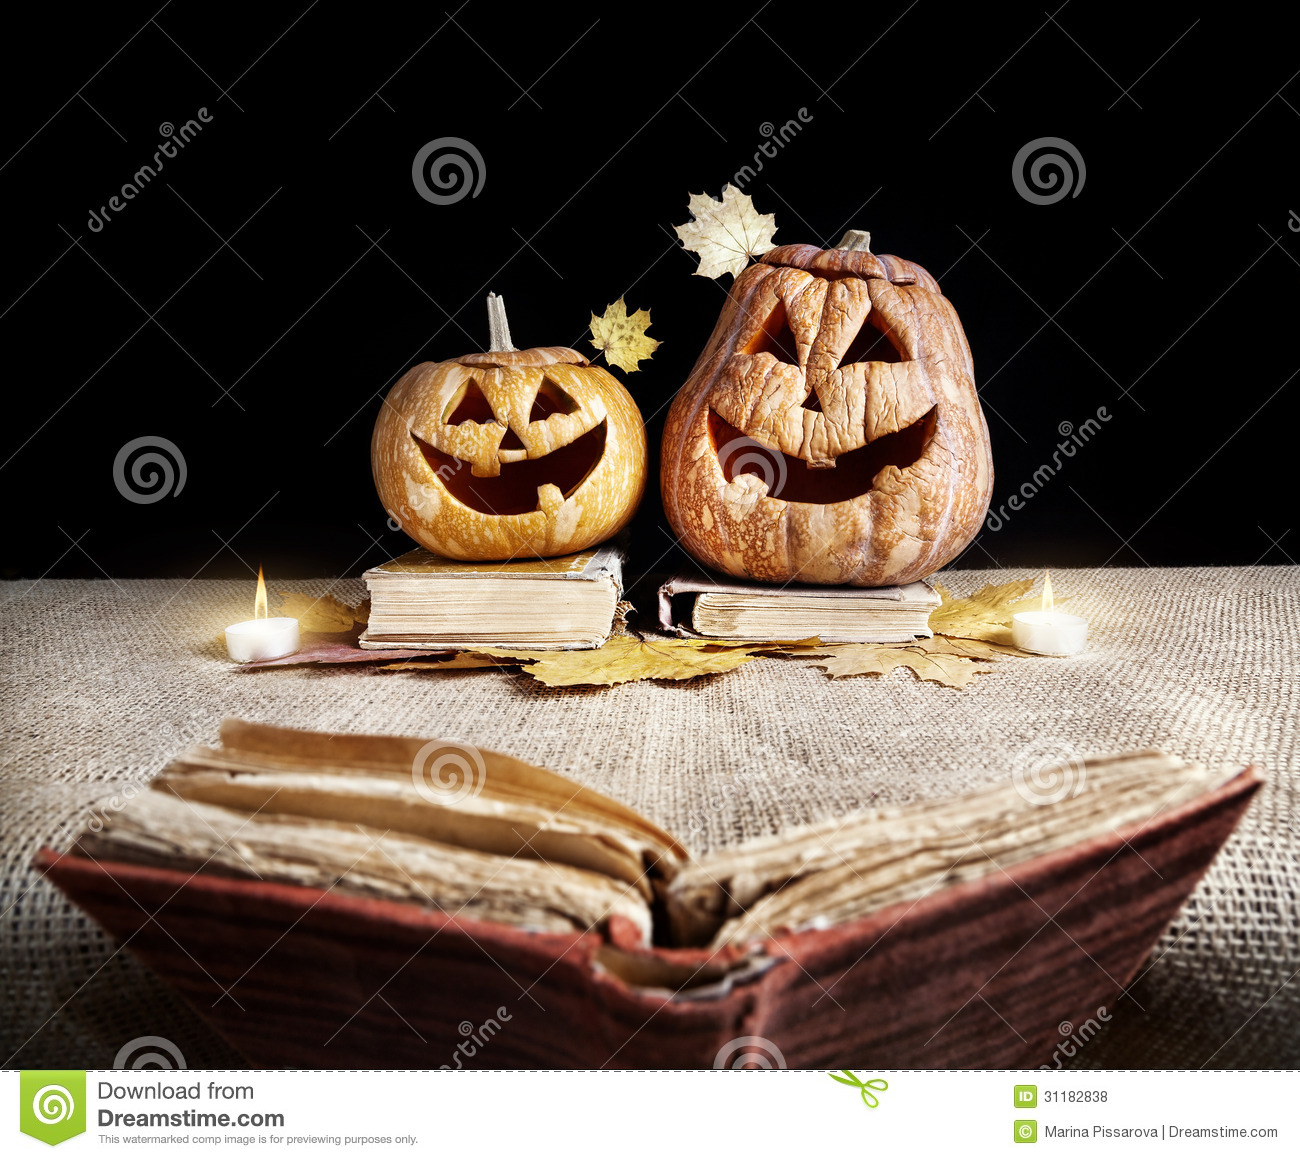 Halloween Voorleesverhaal.Halloween Story Stock Photo Image Of Jackolantern Lantern